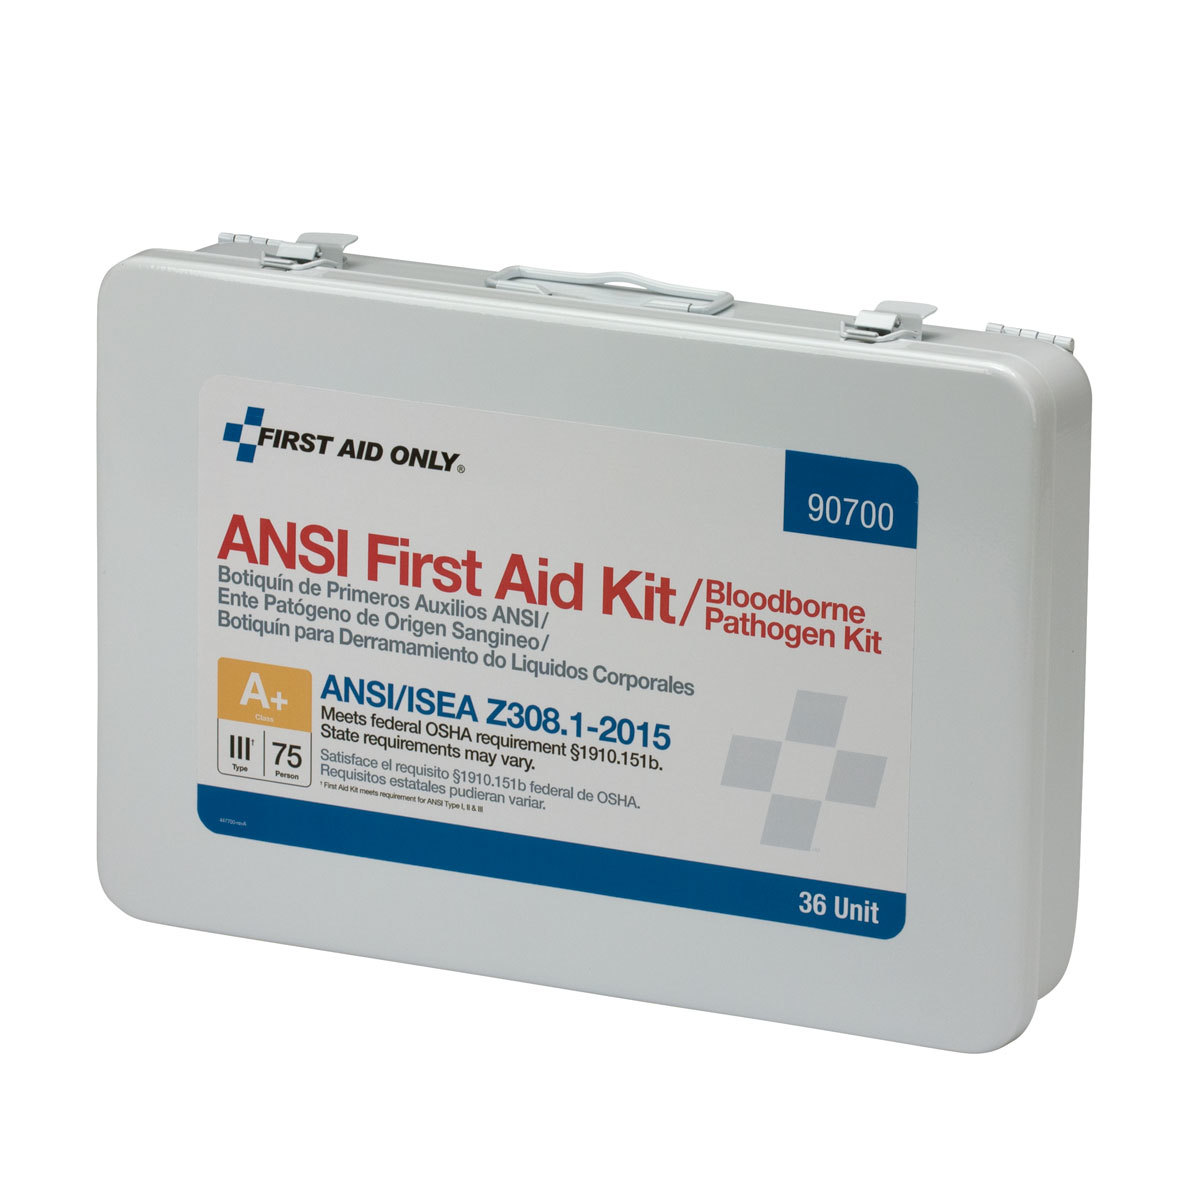 First Aid Only 36 Unit 75 Person ANSI A+ First Aid Kit with BBP Pack